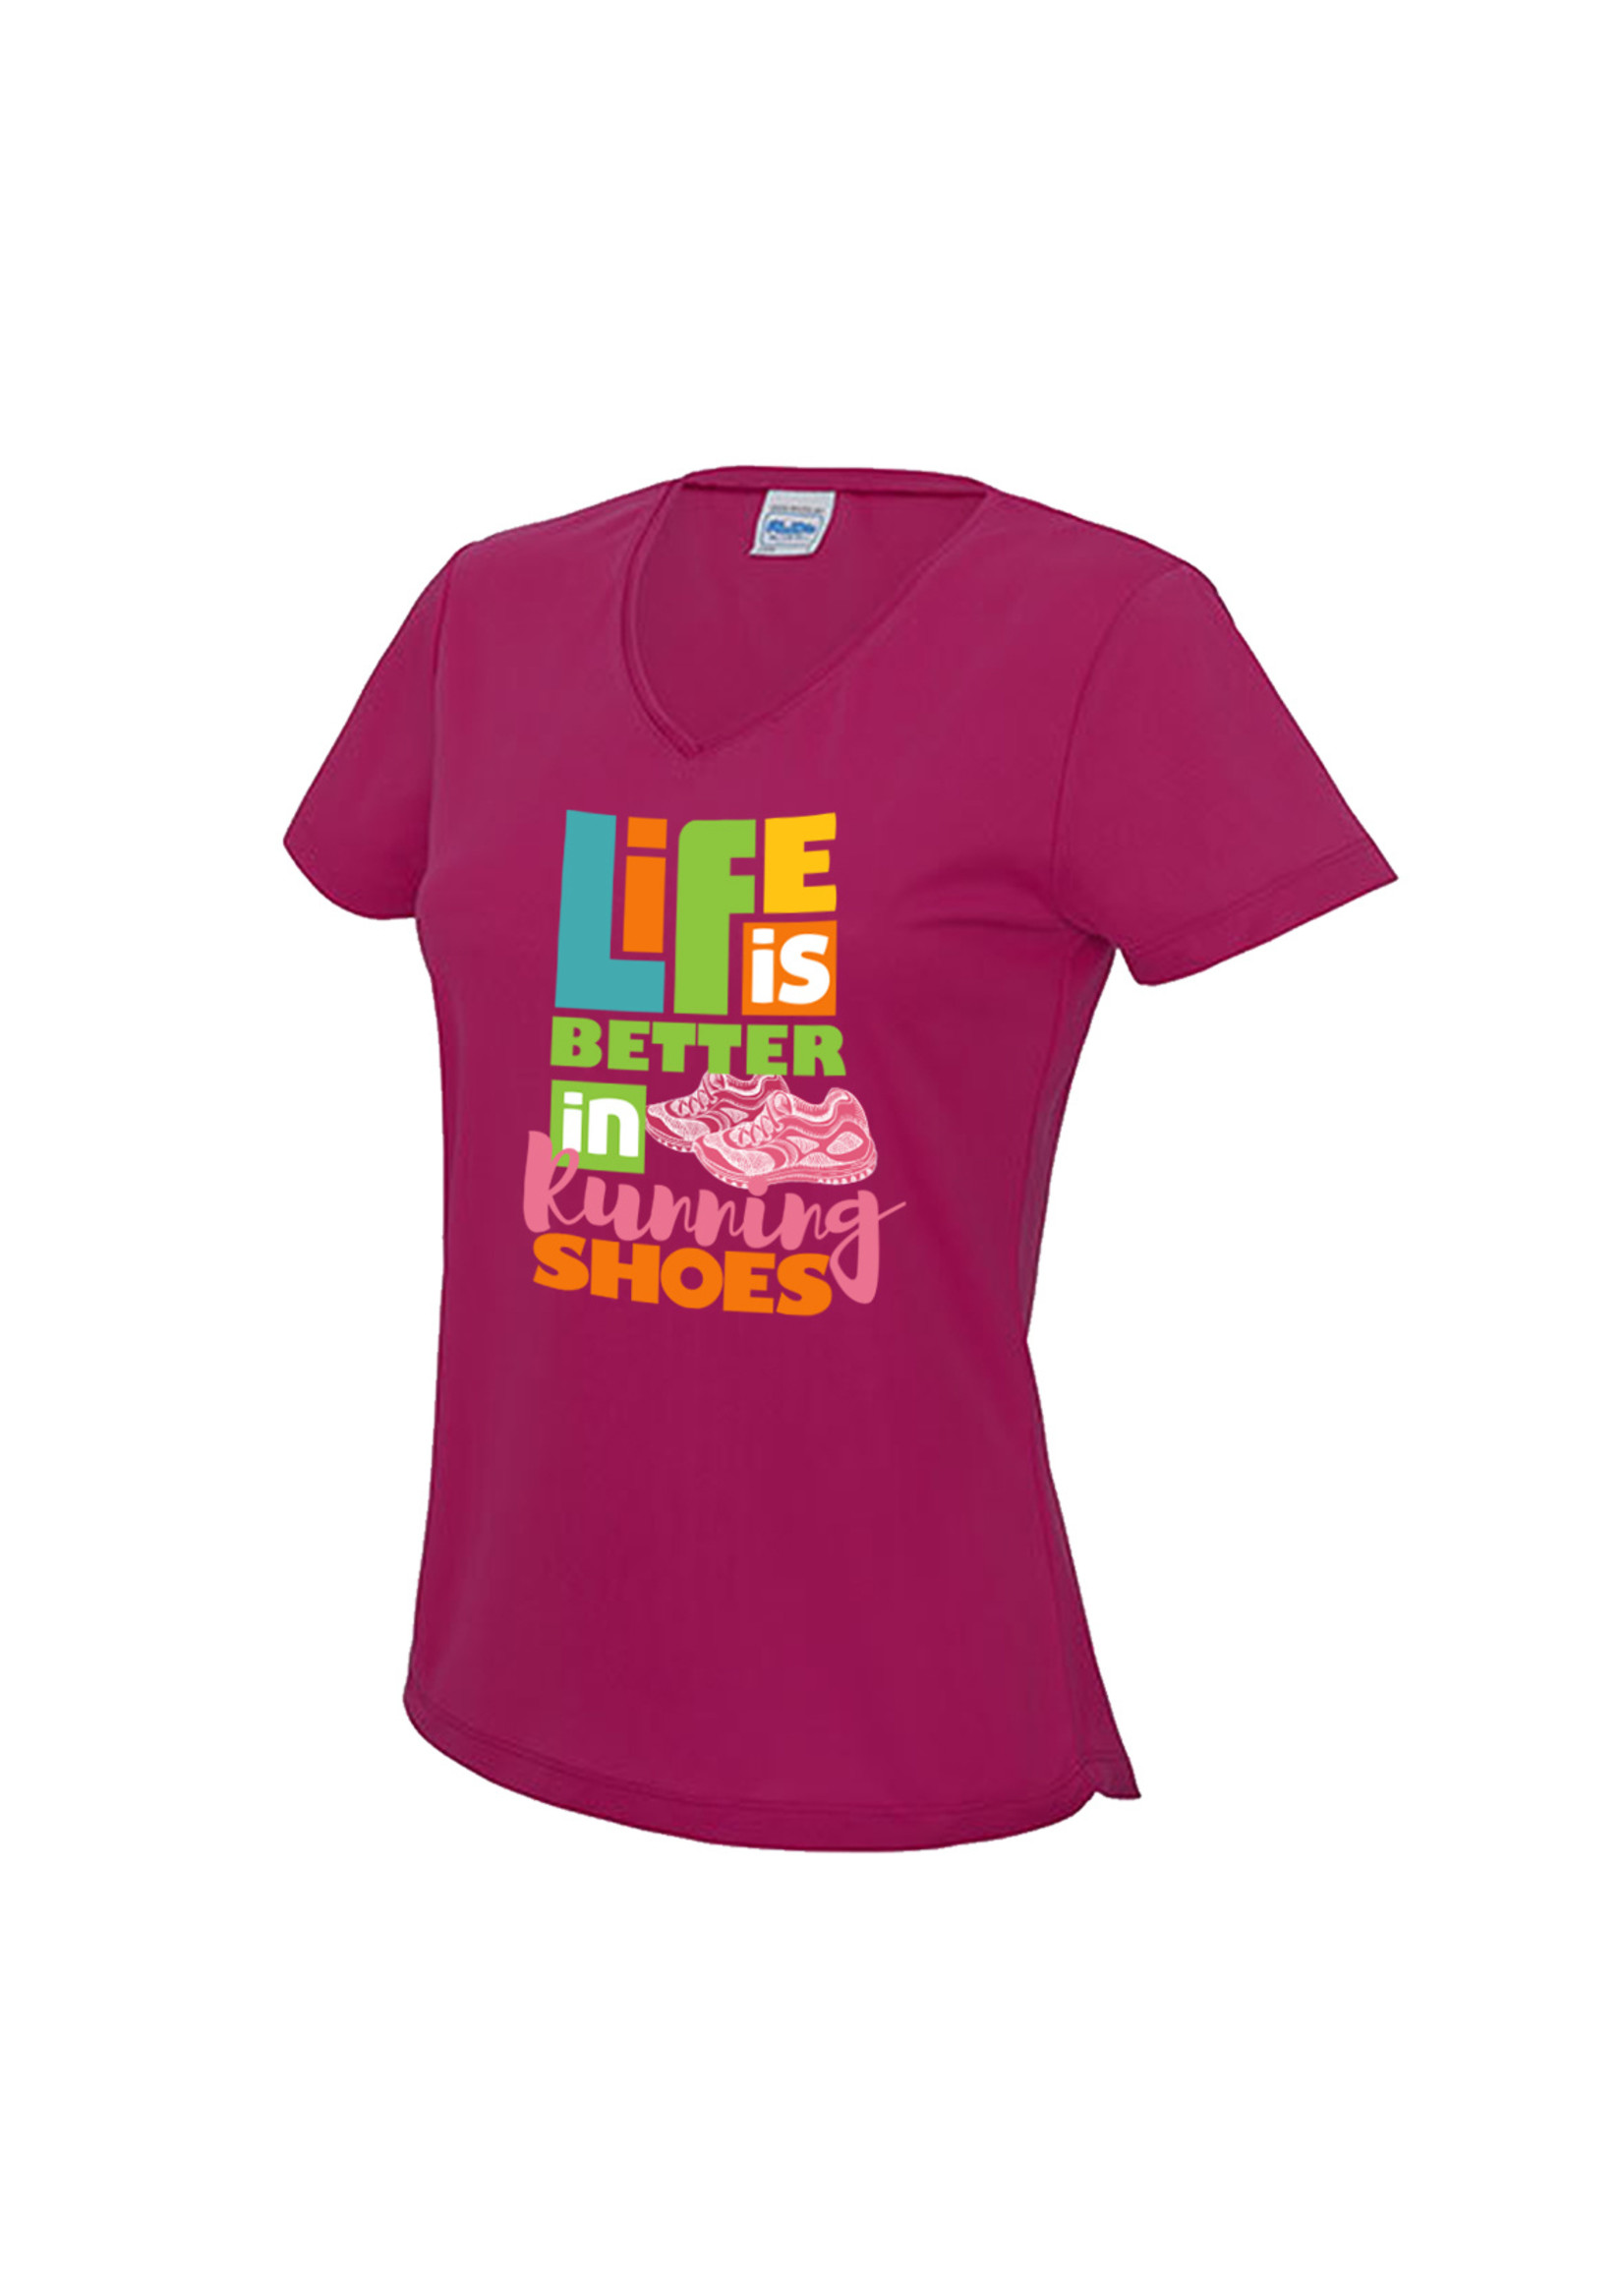 Hardloopshirt met v-hals - Life is better in running shoes